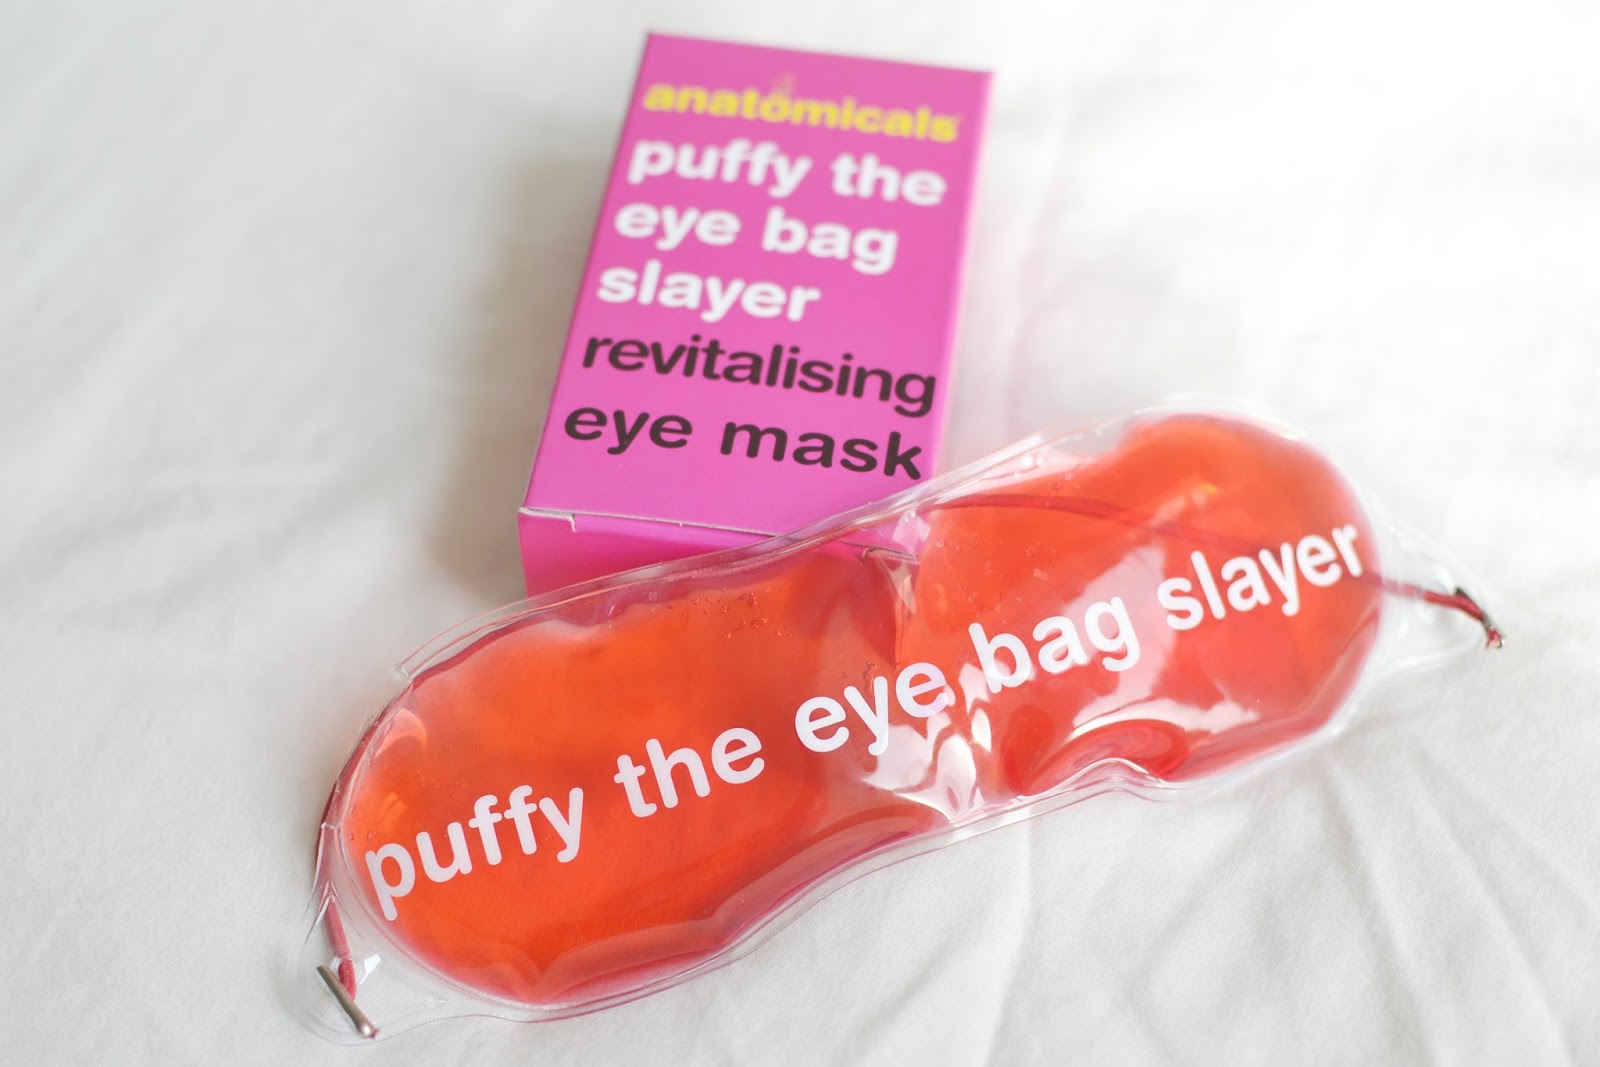 affordable eye mask, eye mask